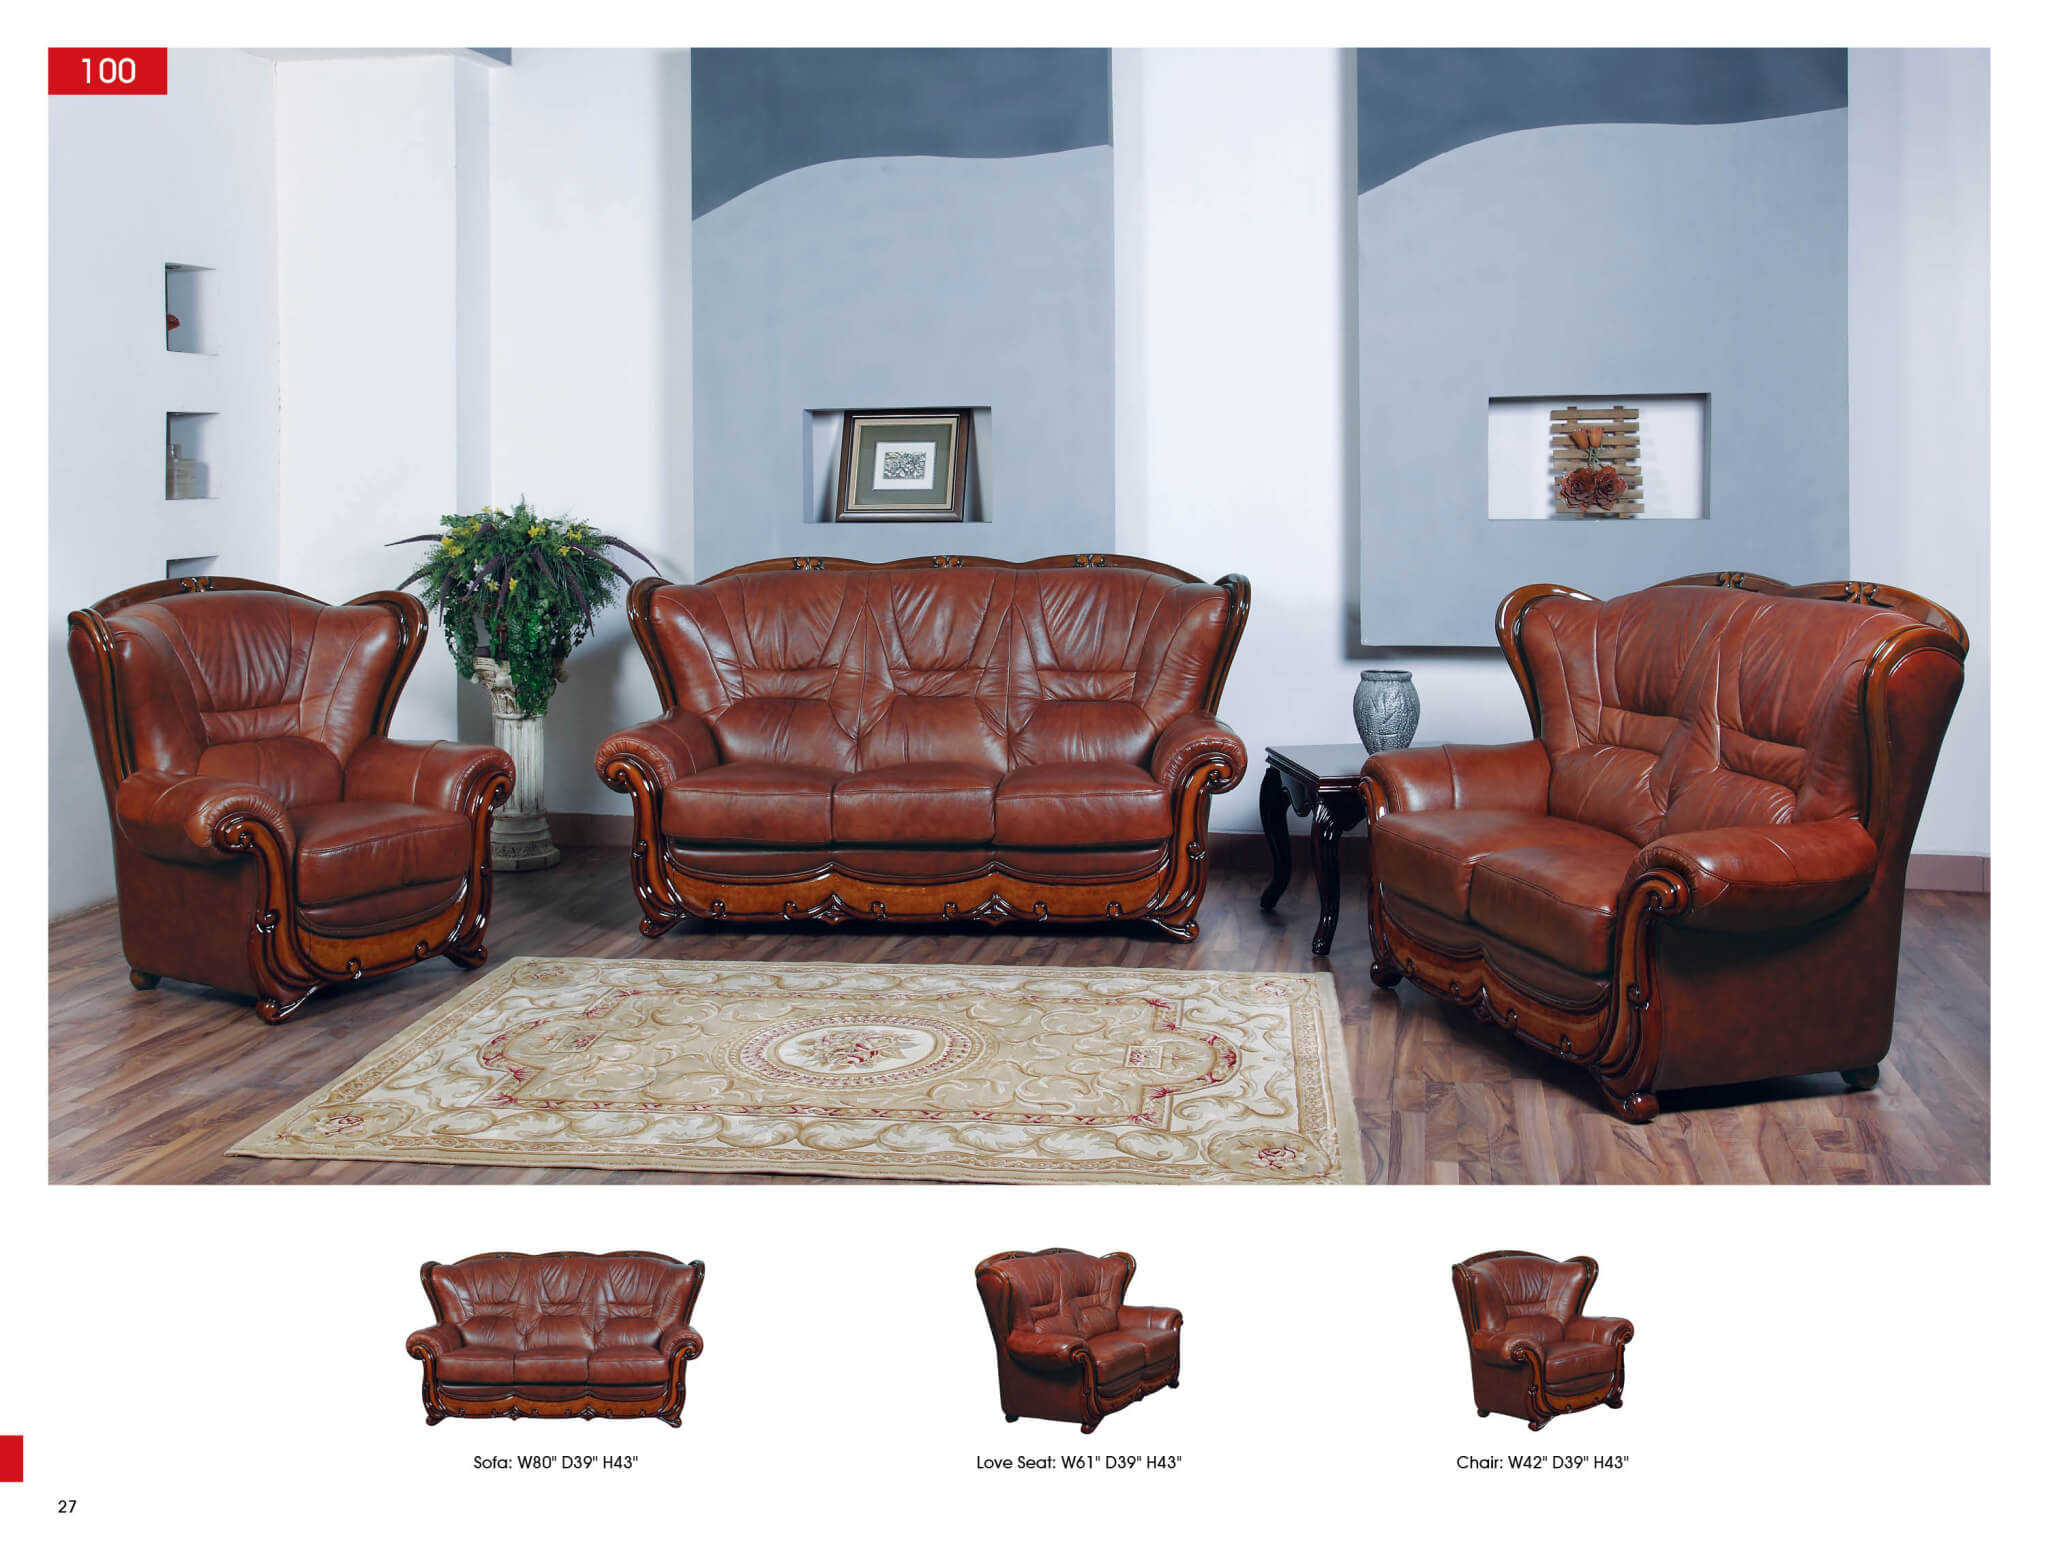 Leather Living Room Furniture Sets Sale : 3 pc Leather Living Room Set - Antique ReCreations